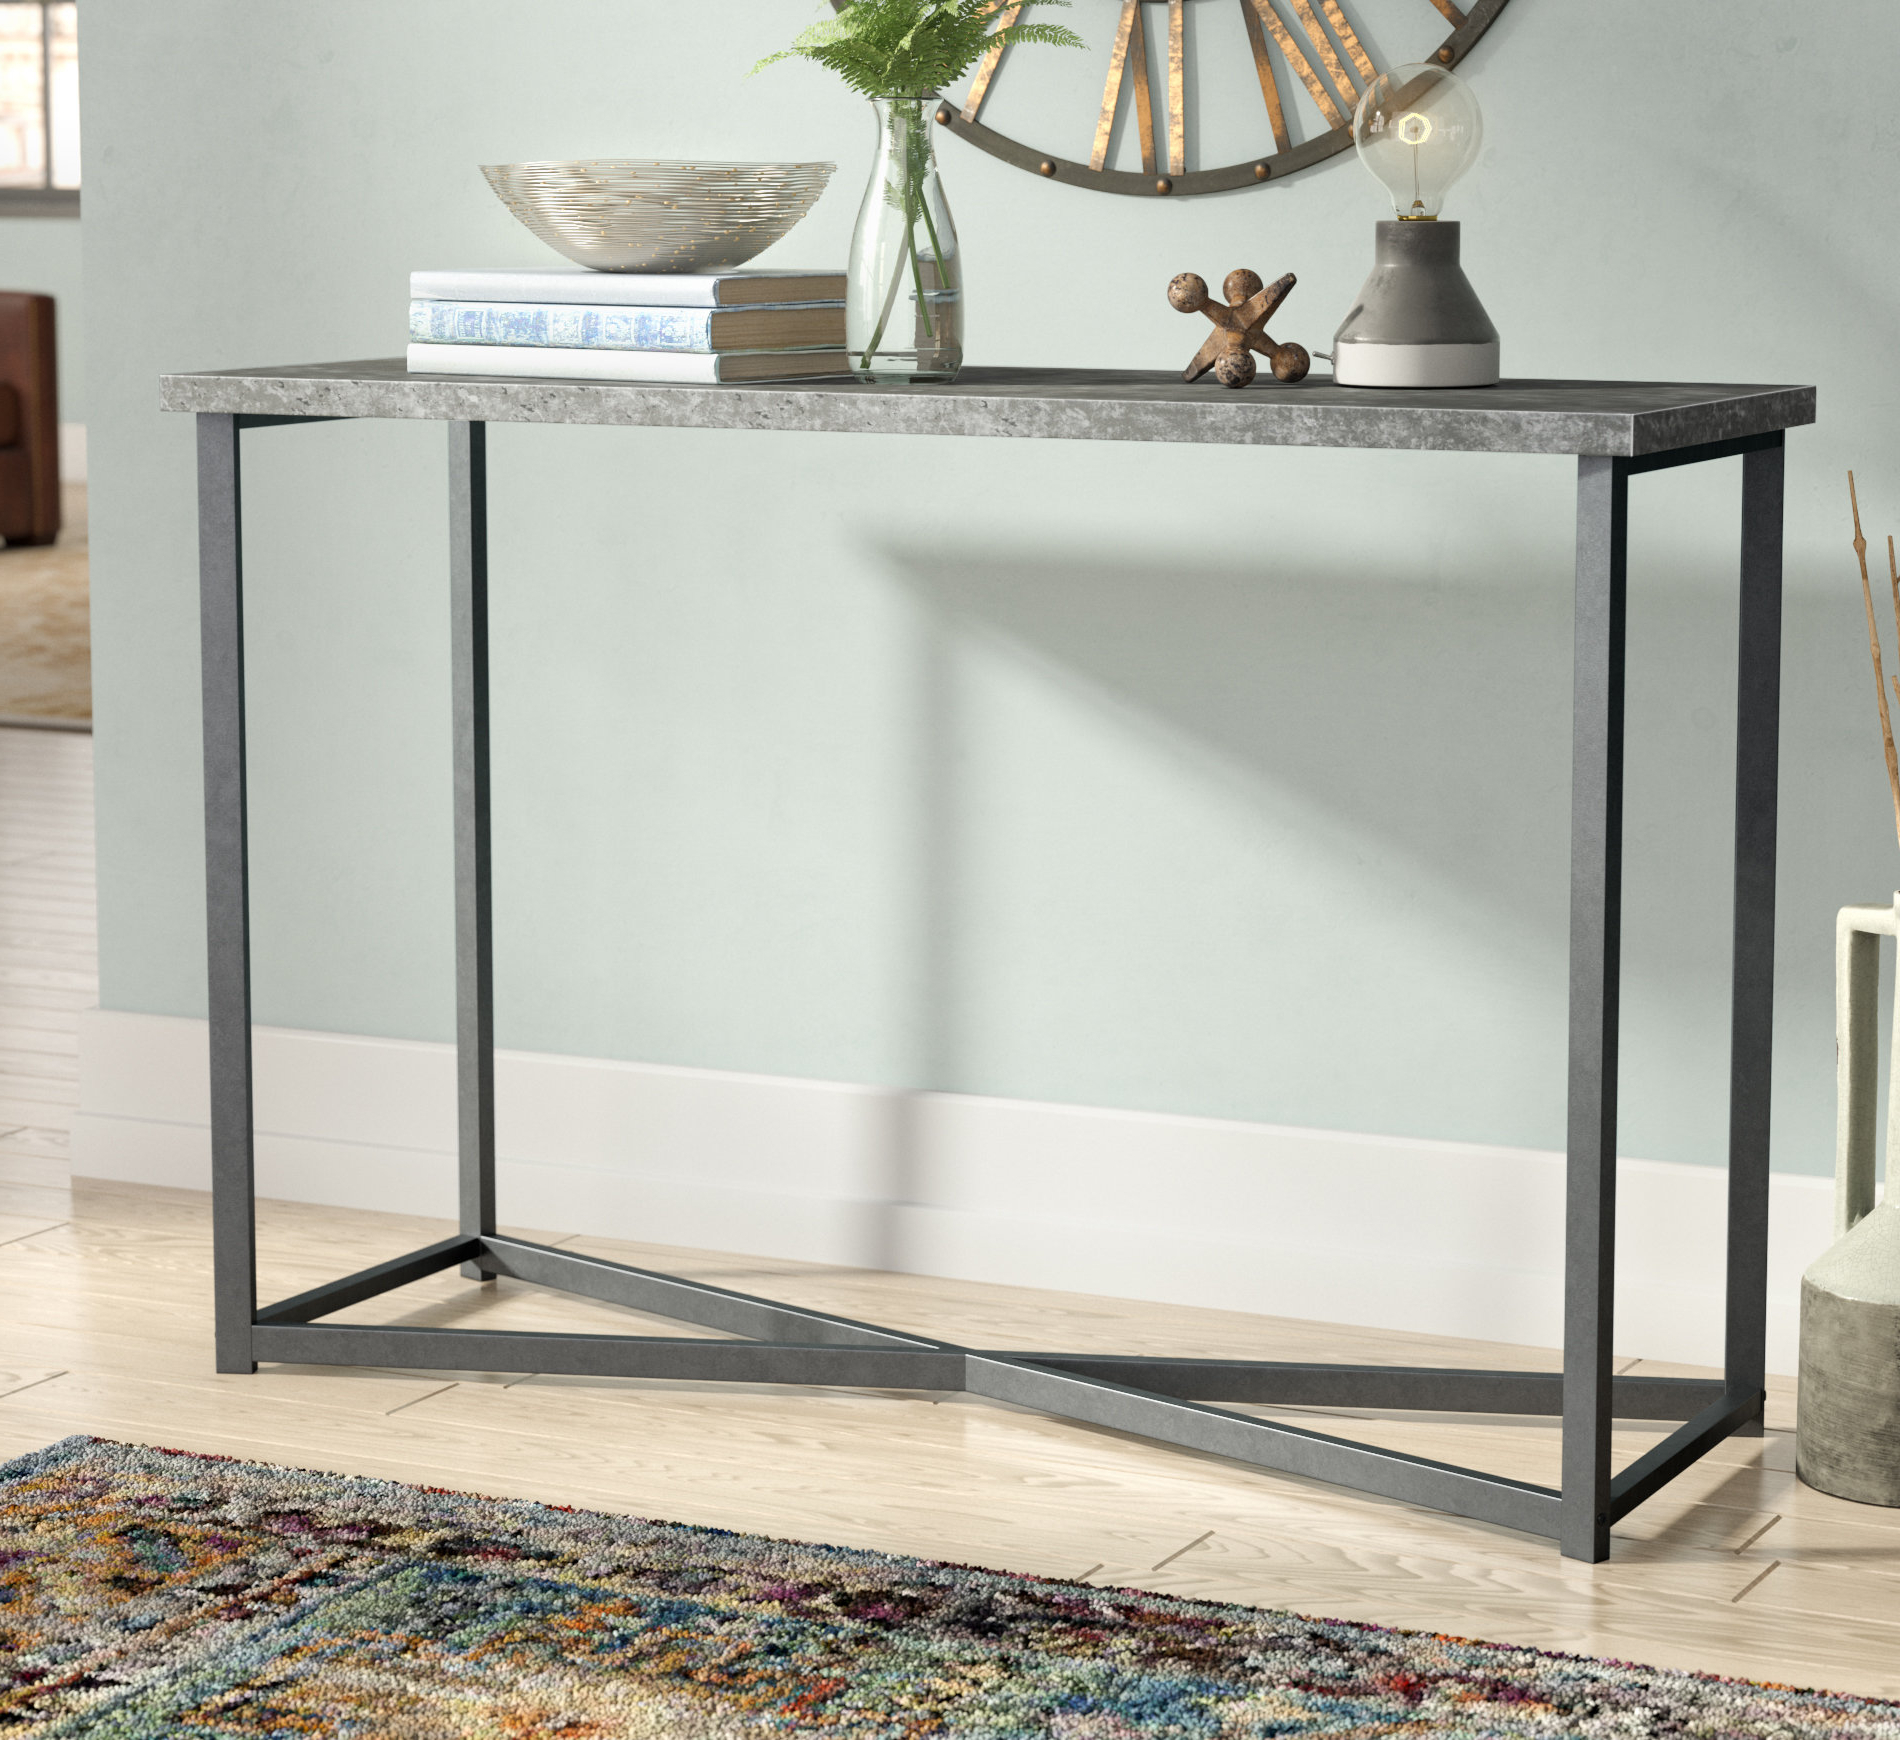 Parsons Clear Glass Top & Dark Steel Base 48x16 Console Tables With Regard To Latest Industrial Console Tables You'll Love (View 8 of 20)